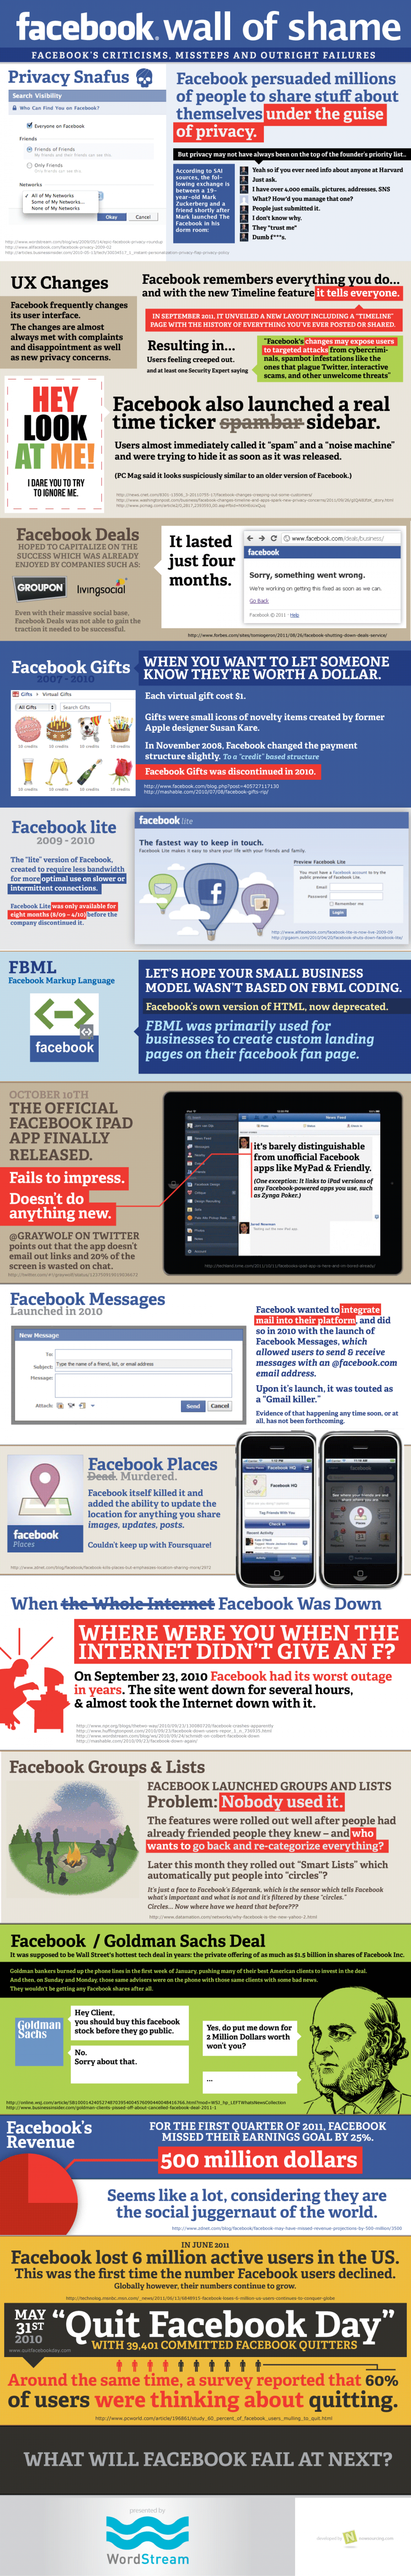 Facebook Wall of Shame: Facebook's Failures, Criticisms and Missteps Infographic